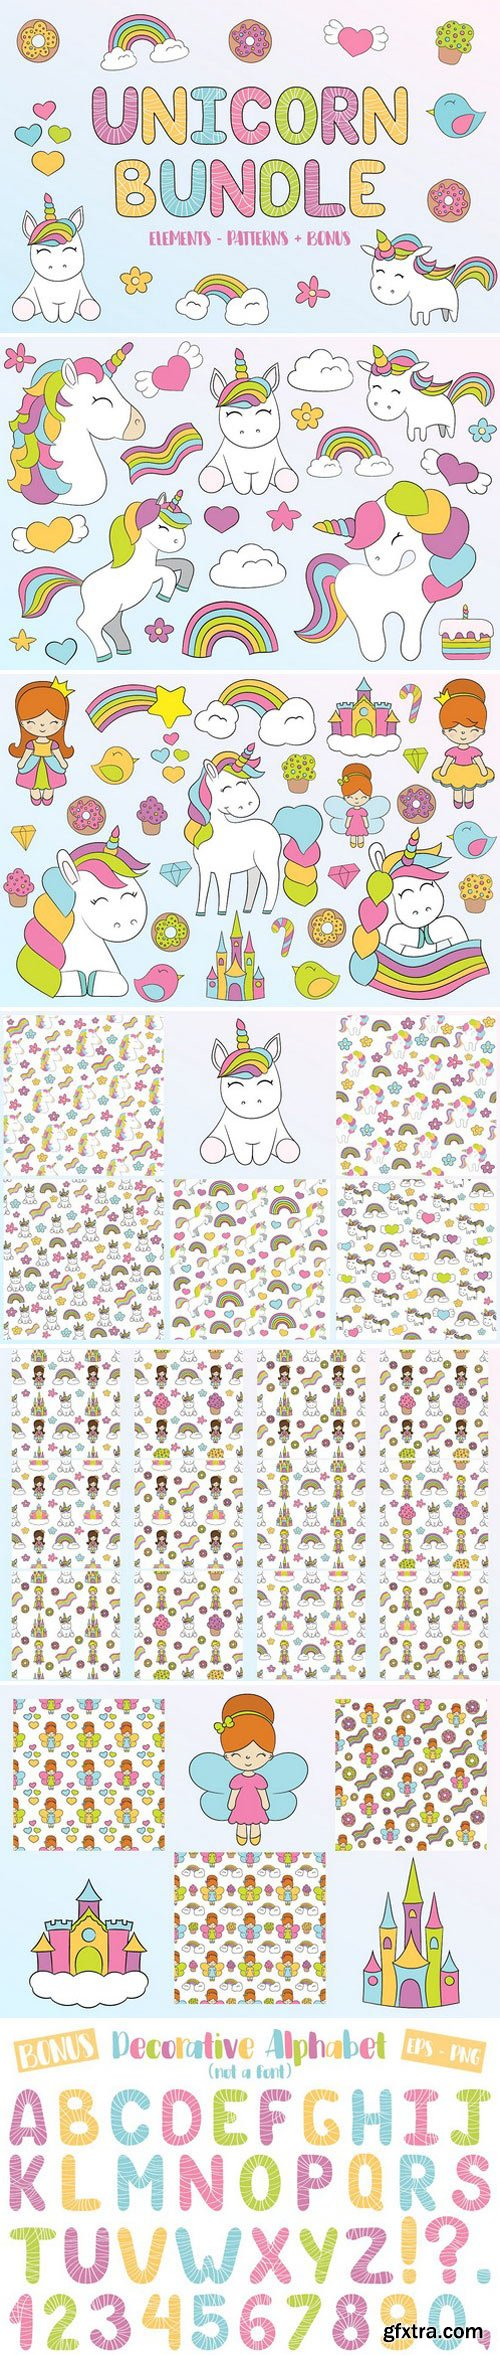 CM - Unicorn Bundle 2135348